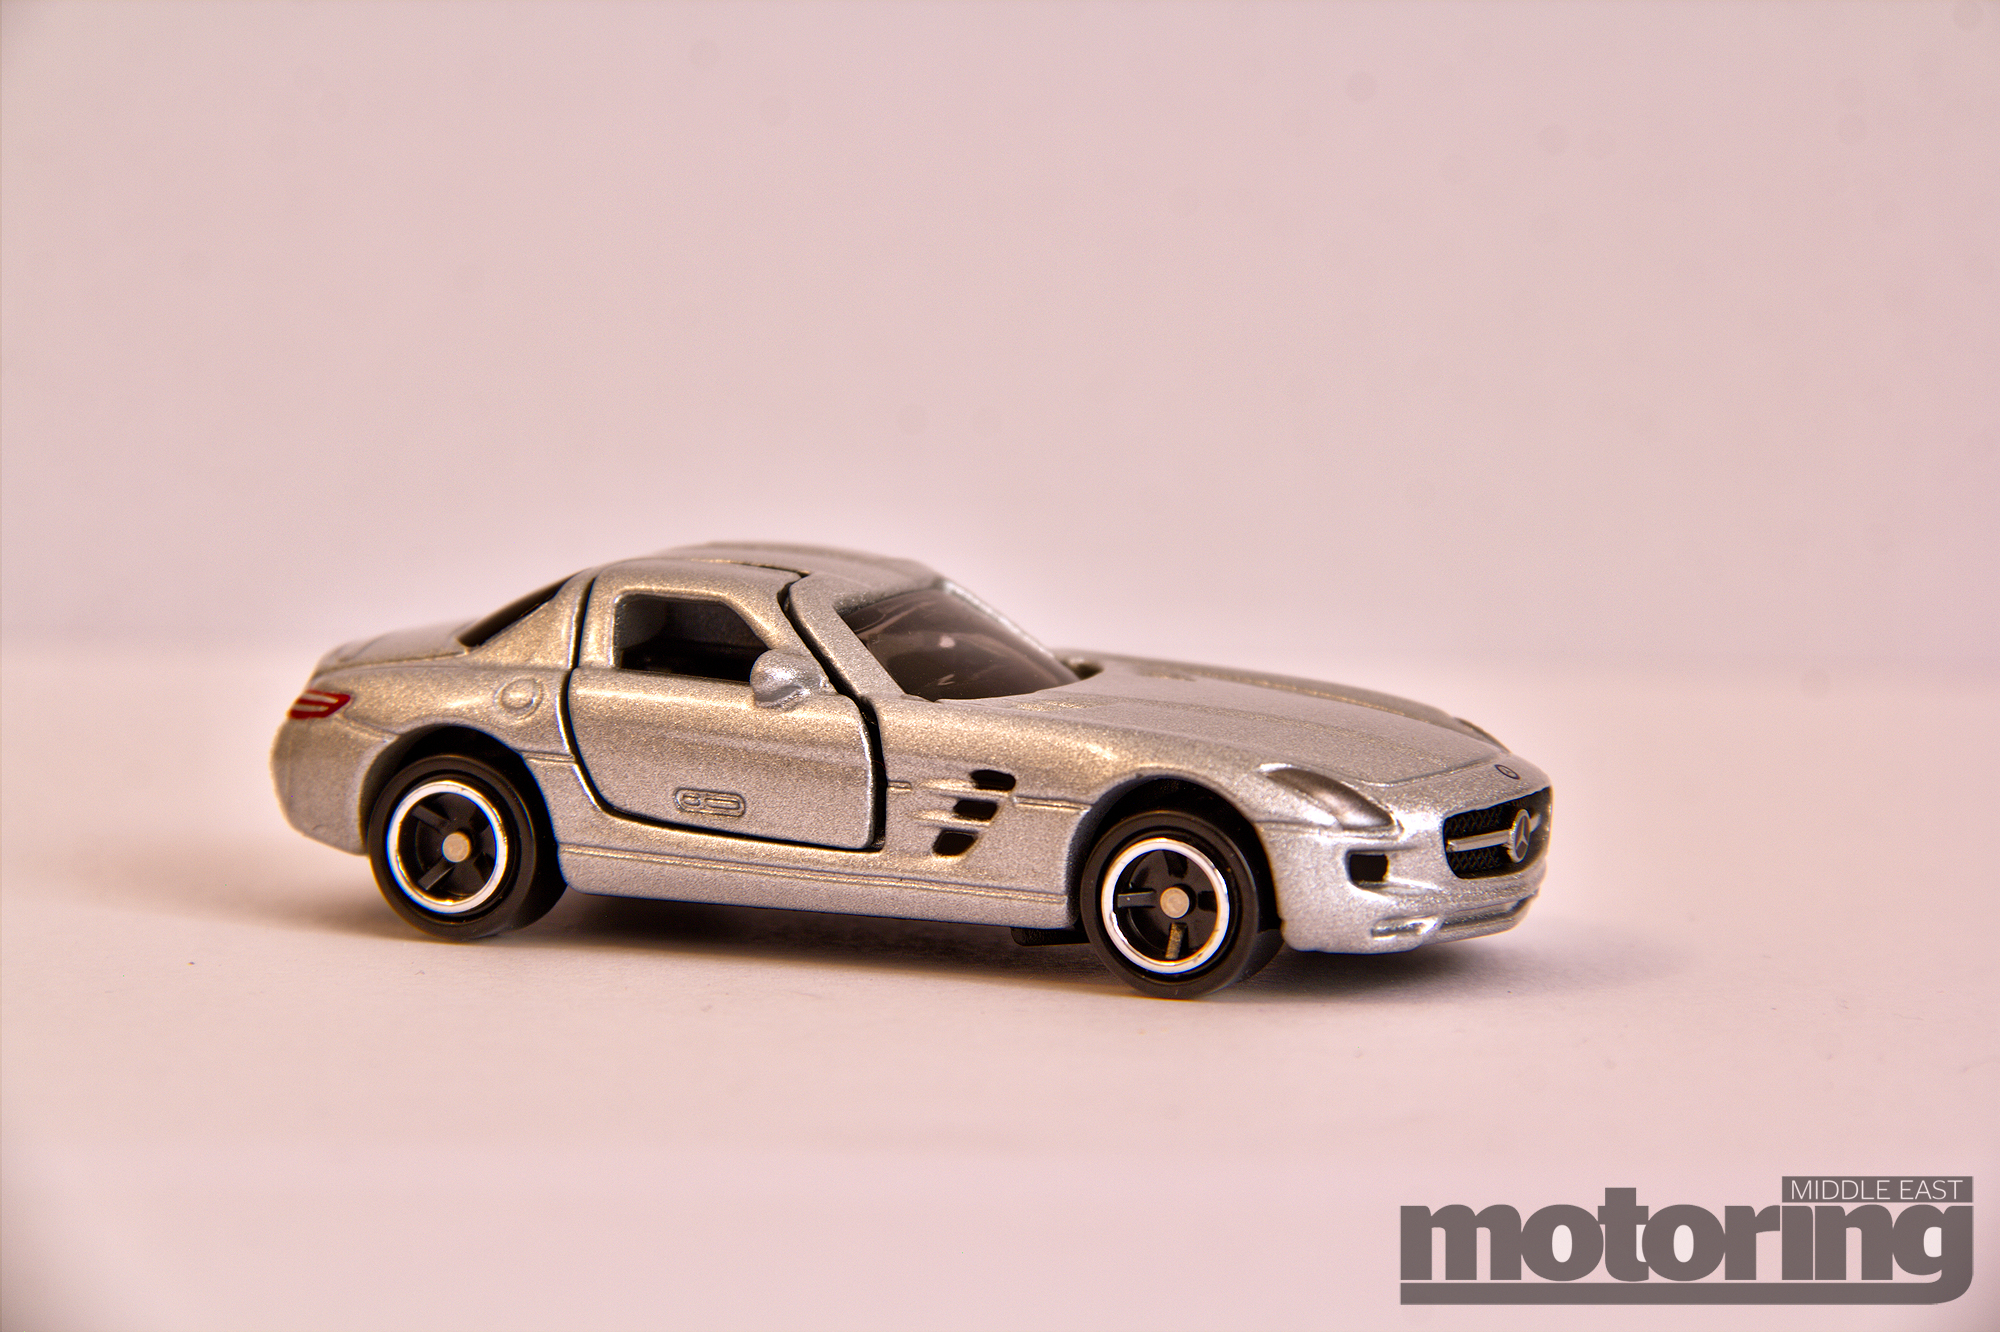 Diecast Dilemma Hot Wheels Tomica Or Matchbox Motoring